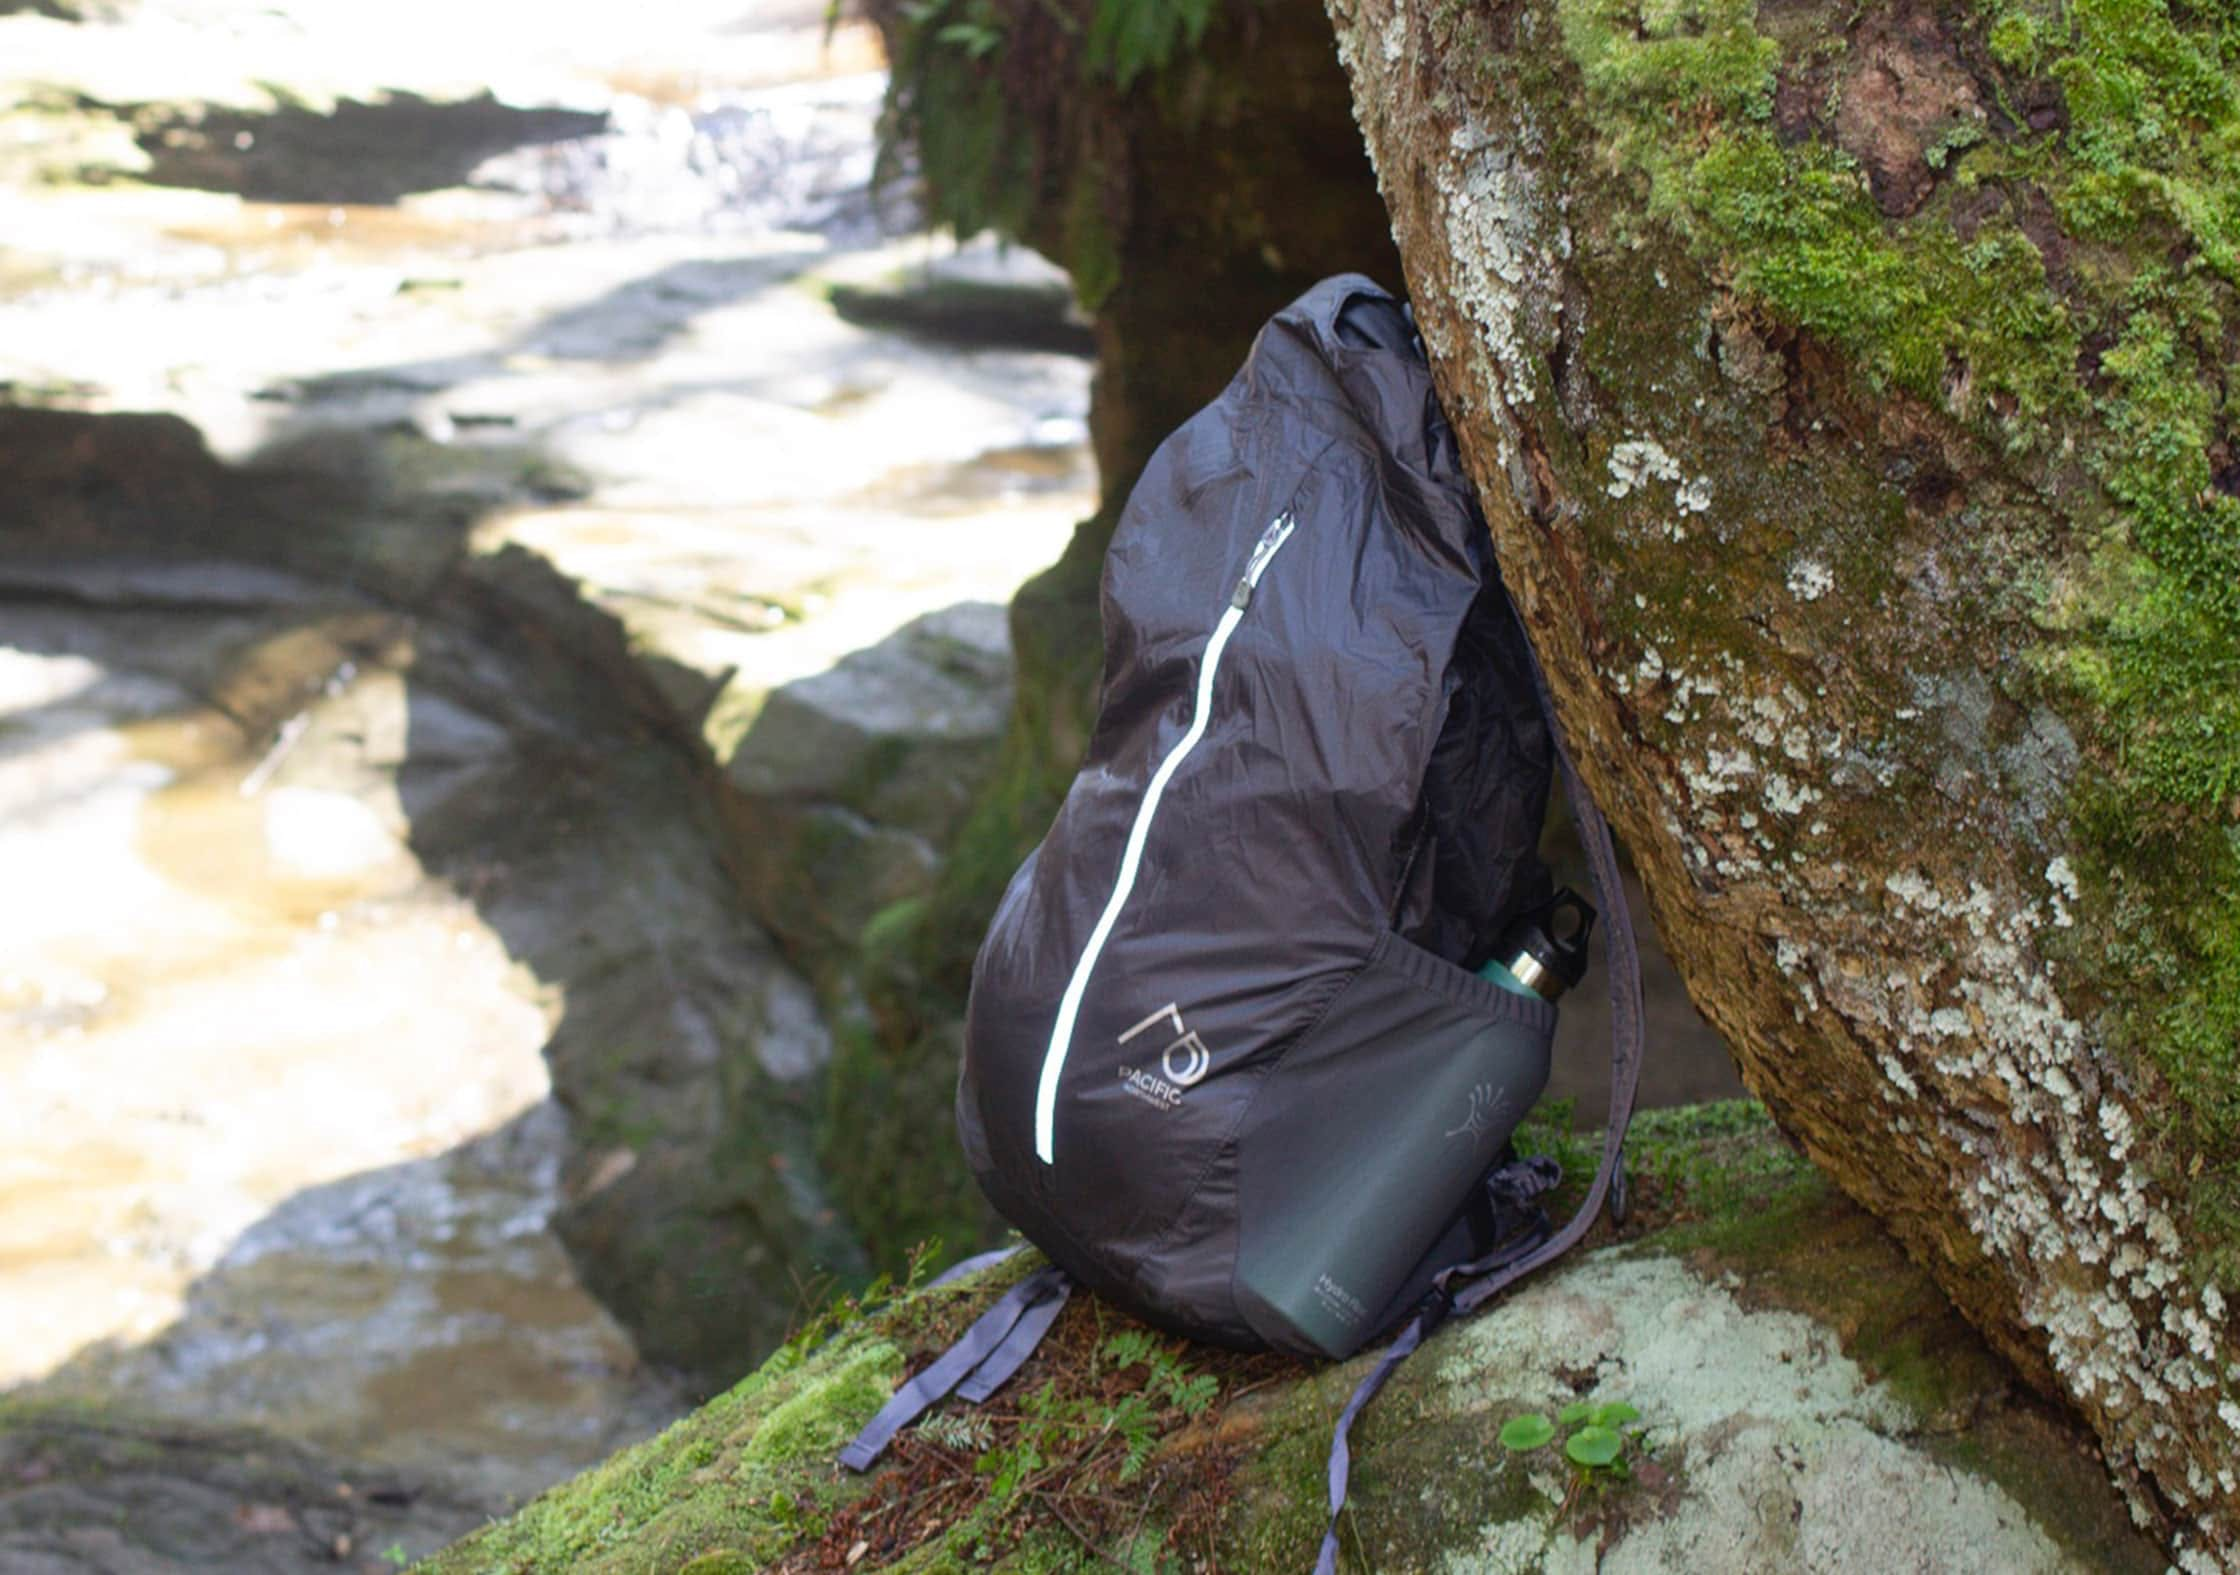 Pacific Northwest Sea To Sky Packable Daypack at Hocking Hills State Park, Ohio